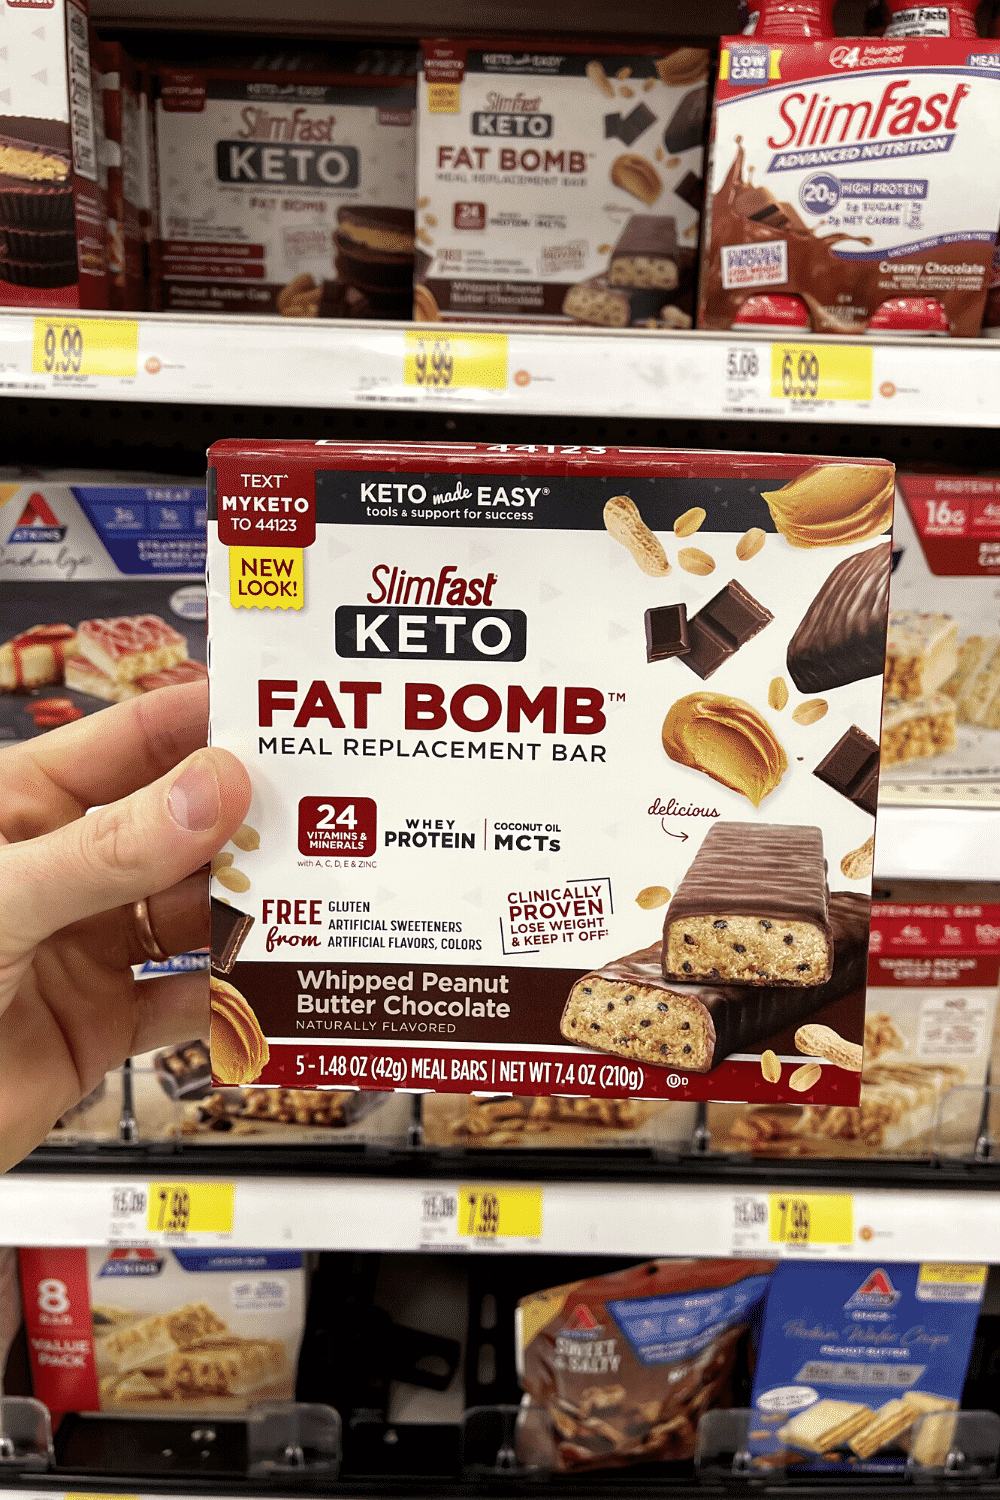 A hand holding a box of keto meal replacement bars.